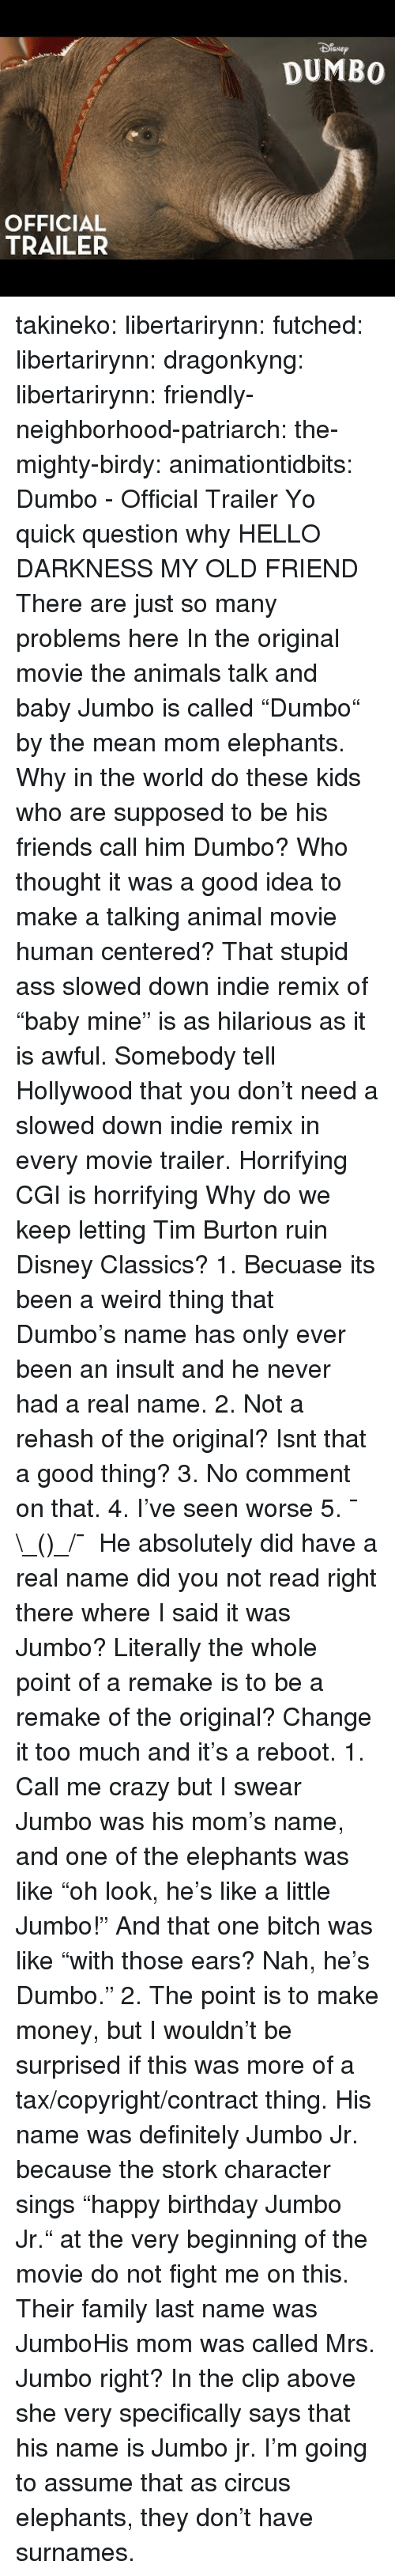 "burton: SNEp  DUMBO  OFFICIAL  TRAILER takineko:  libertarirynn: futched:   libertarirynn:   dragonkyng:   libertarirynn:   friendly-neighborhood-patriarch:  the-mighty-birdy:   animationtidbits:  Dumbo - Official Trailer  Yo quick question why   HELLO DARKNESS MY OLD FRIEND   There are just so many problems here In the original movie the animals talk and baby Jumbo is called ""Dumbo"" by the mean mom elephants. Why in the world do these kids who are supposed to be his friends call him Dumbo? Who thought it was a good idea to make a talking animal movie human centered? That stupid ass slowed down indie remix of ""baby mine"" is as hilarious as it is awful. Somebody tell Hollywood that you don't need a slowed down indie remix in every movie trailer. Horrifying CGI is horrifying Why do we keep letting Tim Burton ruin Disney Classics?   1. Becuase its been a weird thing that Dumbo's name has only ever been an insult and he never had a real name. 2. Not a rehash of the original? Isnt that a good thing? 3. No comment on that. 4. I've seen worse 5. ¯\_(ツ)_/¯   He absolutely did have a real name did you not read right there where I said it was Jumbo? Literally the whole point of a remake is to be a remake of the original? Change it too much and it's a reboot.   1. Call me crazy but I swear Jumbo was his mom's name, and one of the elephants was like ""oh look, he's like a little Jumbo!"" And that one bitch was like ""with those ears? Nah, he's Dumbo."" 2. The point is to make money, but I wouldn't be surprised if this was more of a tax/copyright/contract thing.   His name was definitely Jumbo Jr. because the stork character sings ""happy birthday Jumbo Jr."" at the very beginning of the movie do not fight me on this.  Their family last name was JumboHis mom was called Mrs. Jumbo right?  In the clip above she very specifically says that his name is Jumbo jr. I'm going to assume that as circus elephants, they don't have surnames."